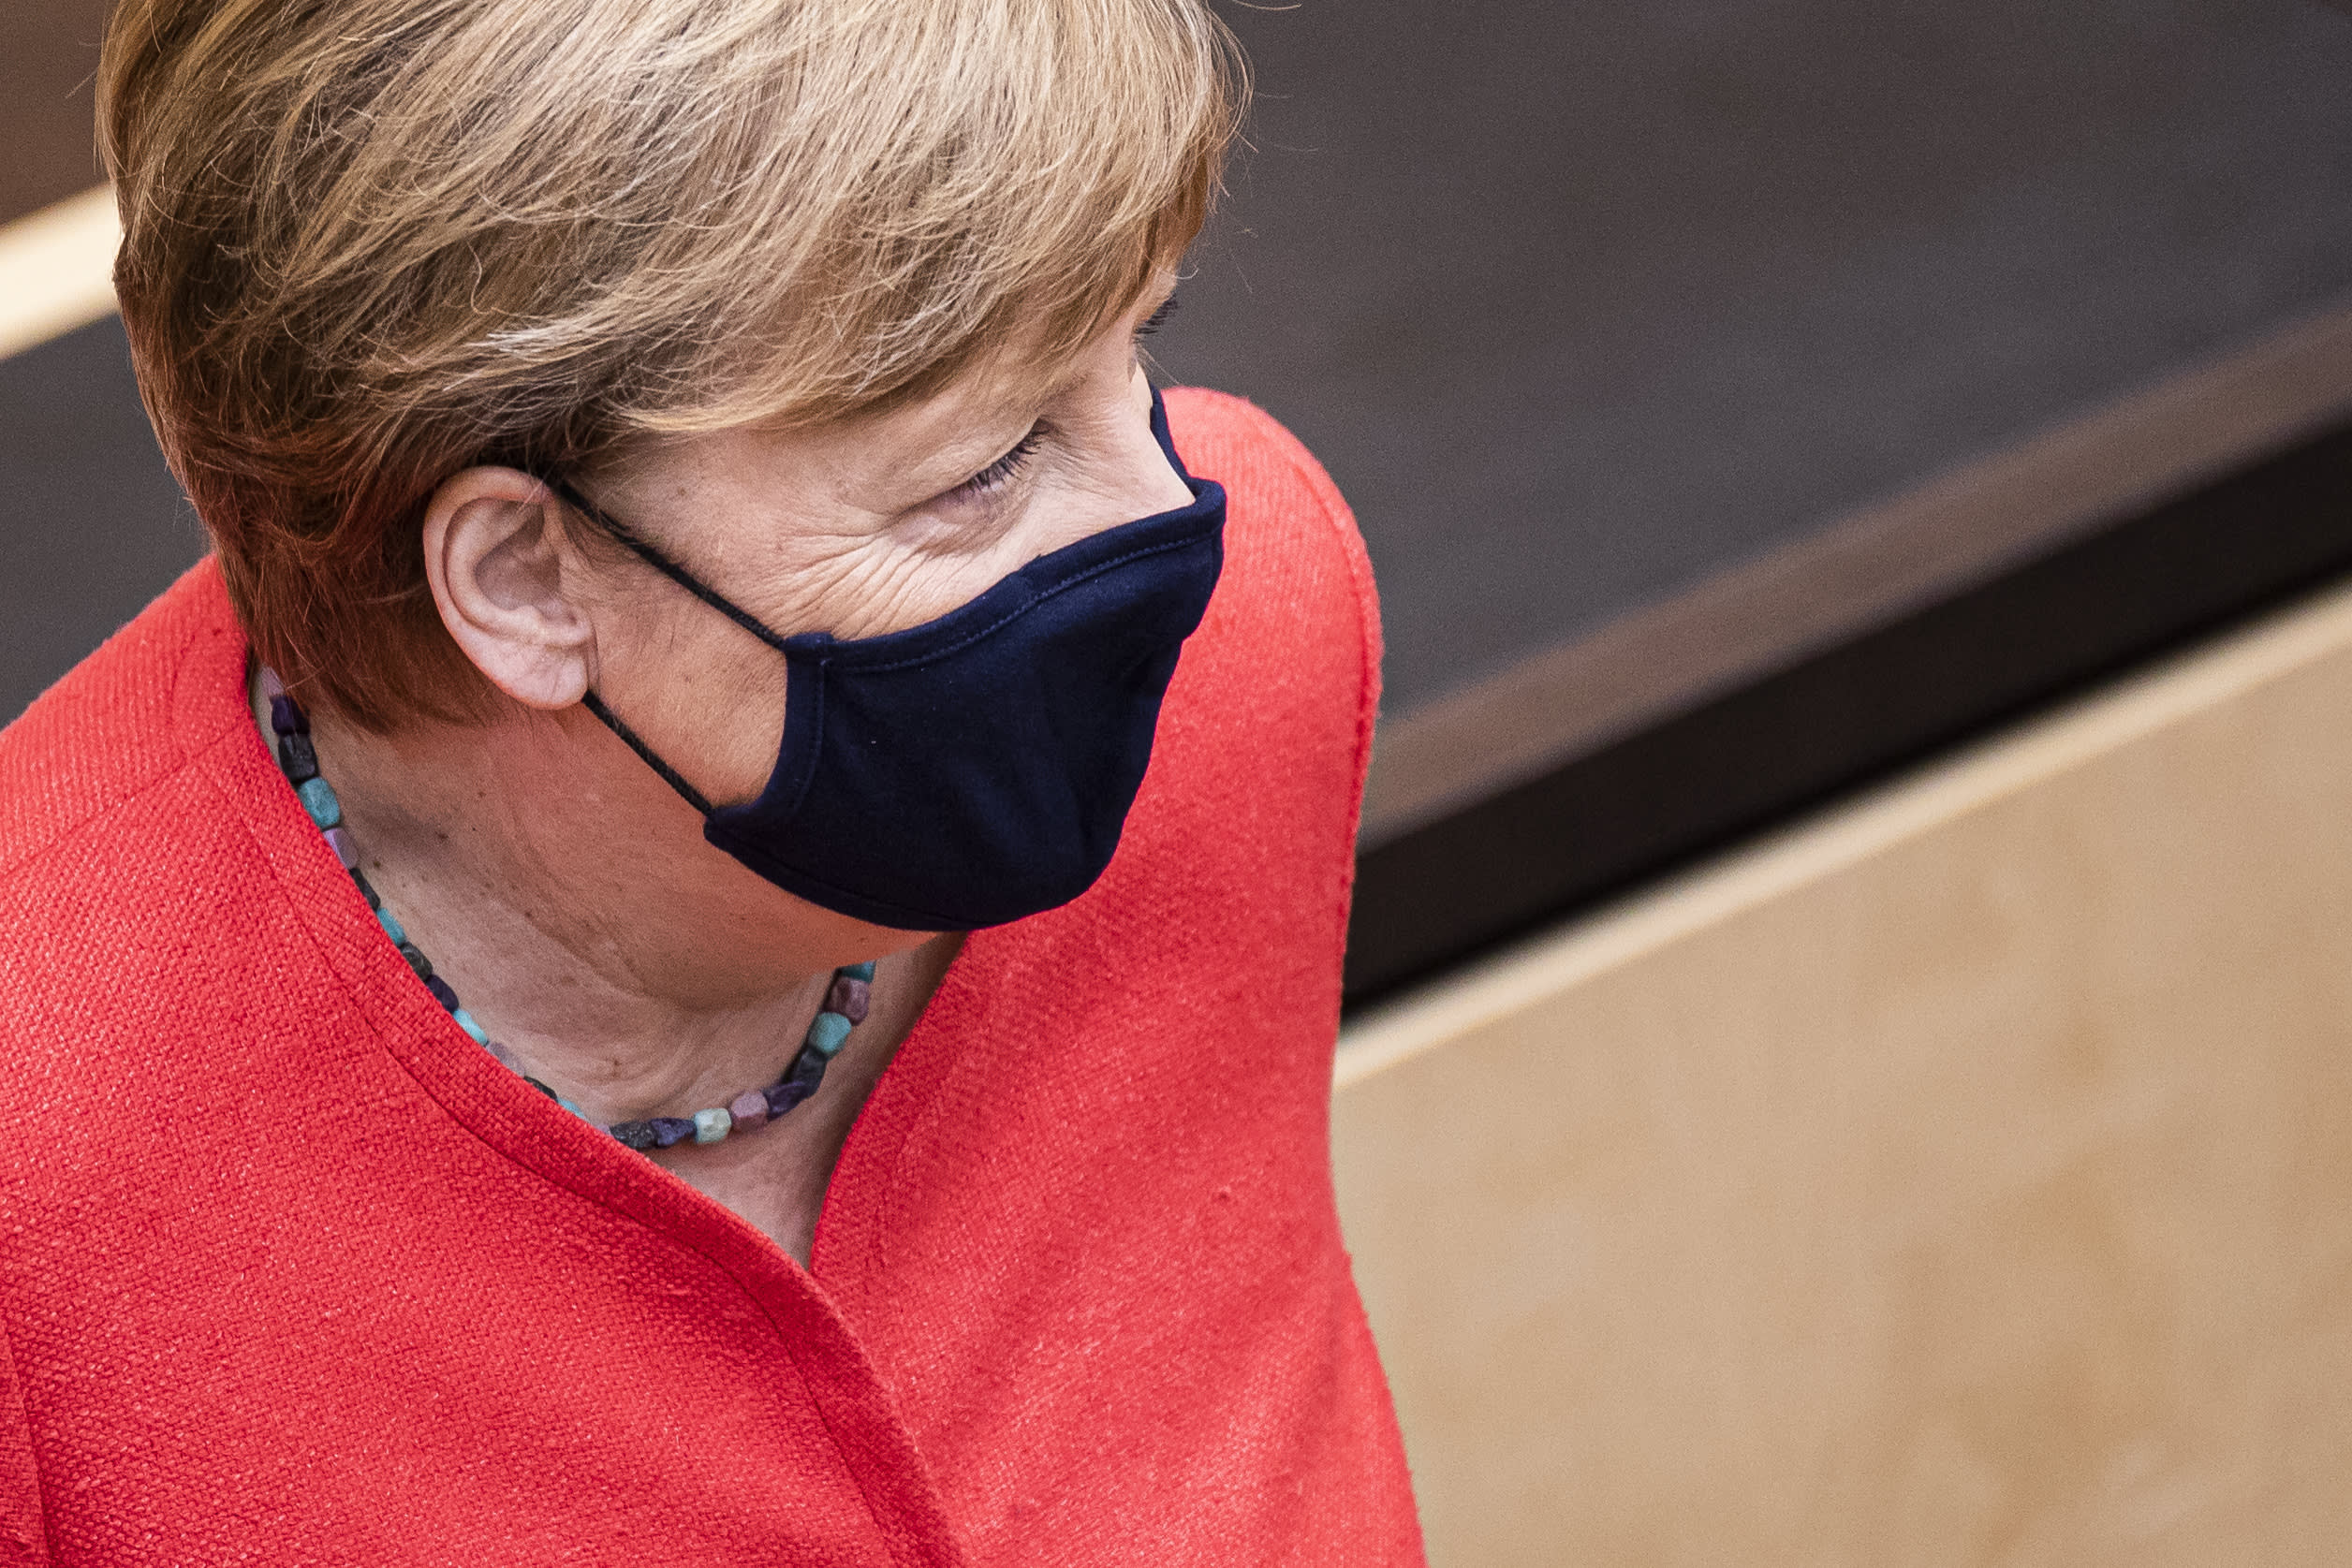 Op-ed: Merkel faces a historic test of leadership that will shape Europe's future after coronavirus - CNBC